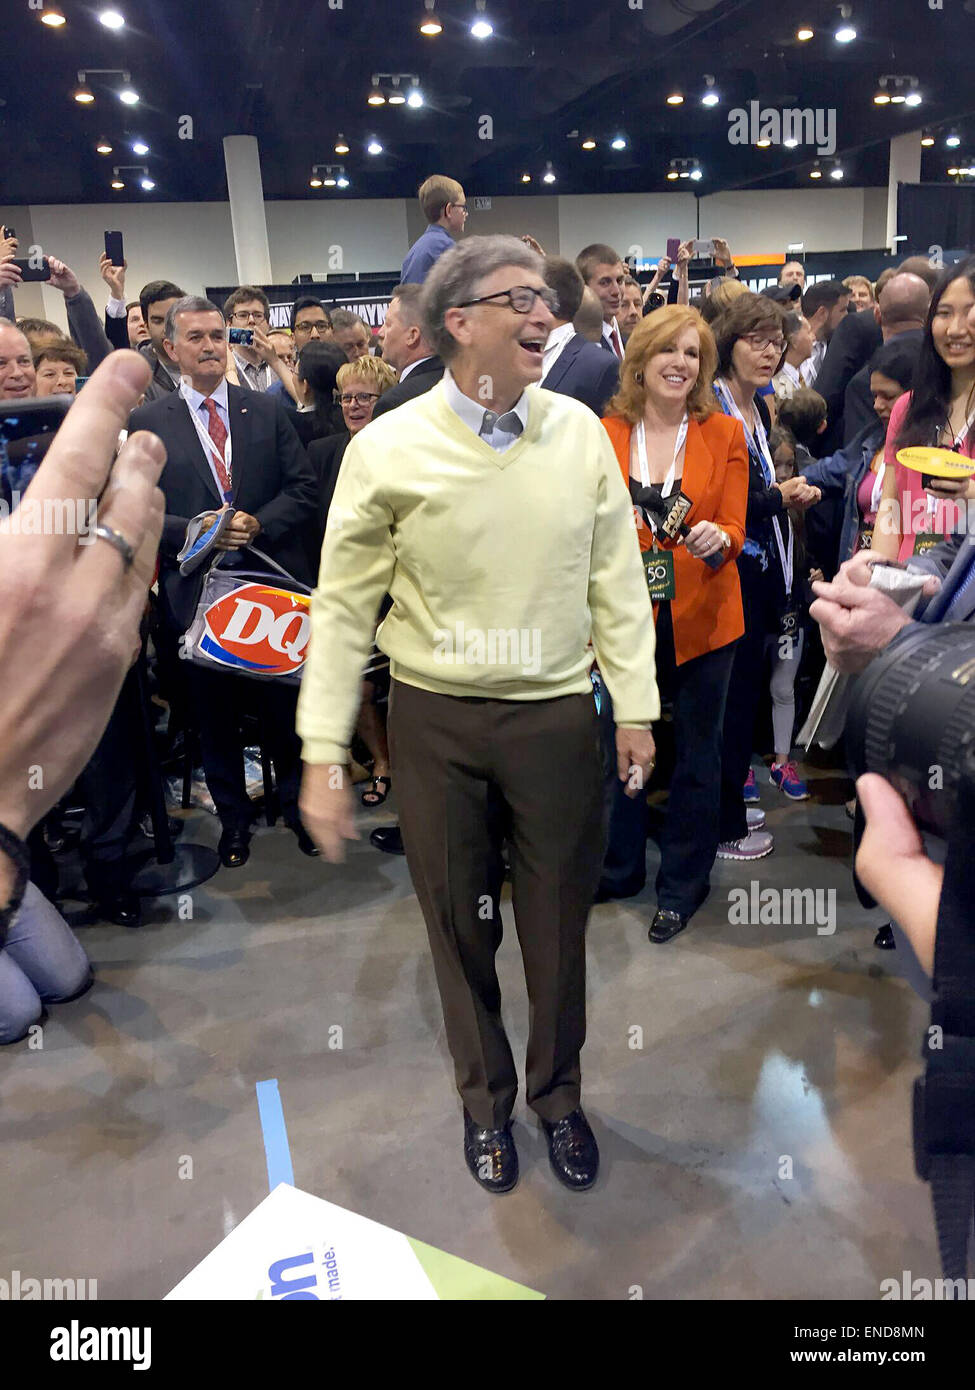 Omaha, USA. 2nd May, 2015. Microsoft founder Bill Gates attends the annual shareholder's meeting of investment - Stock Image